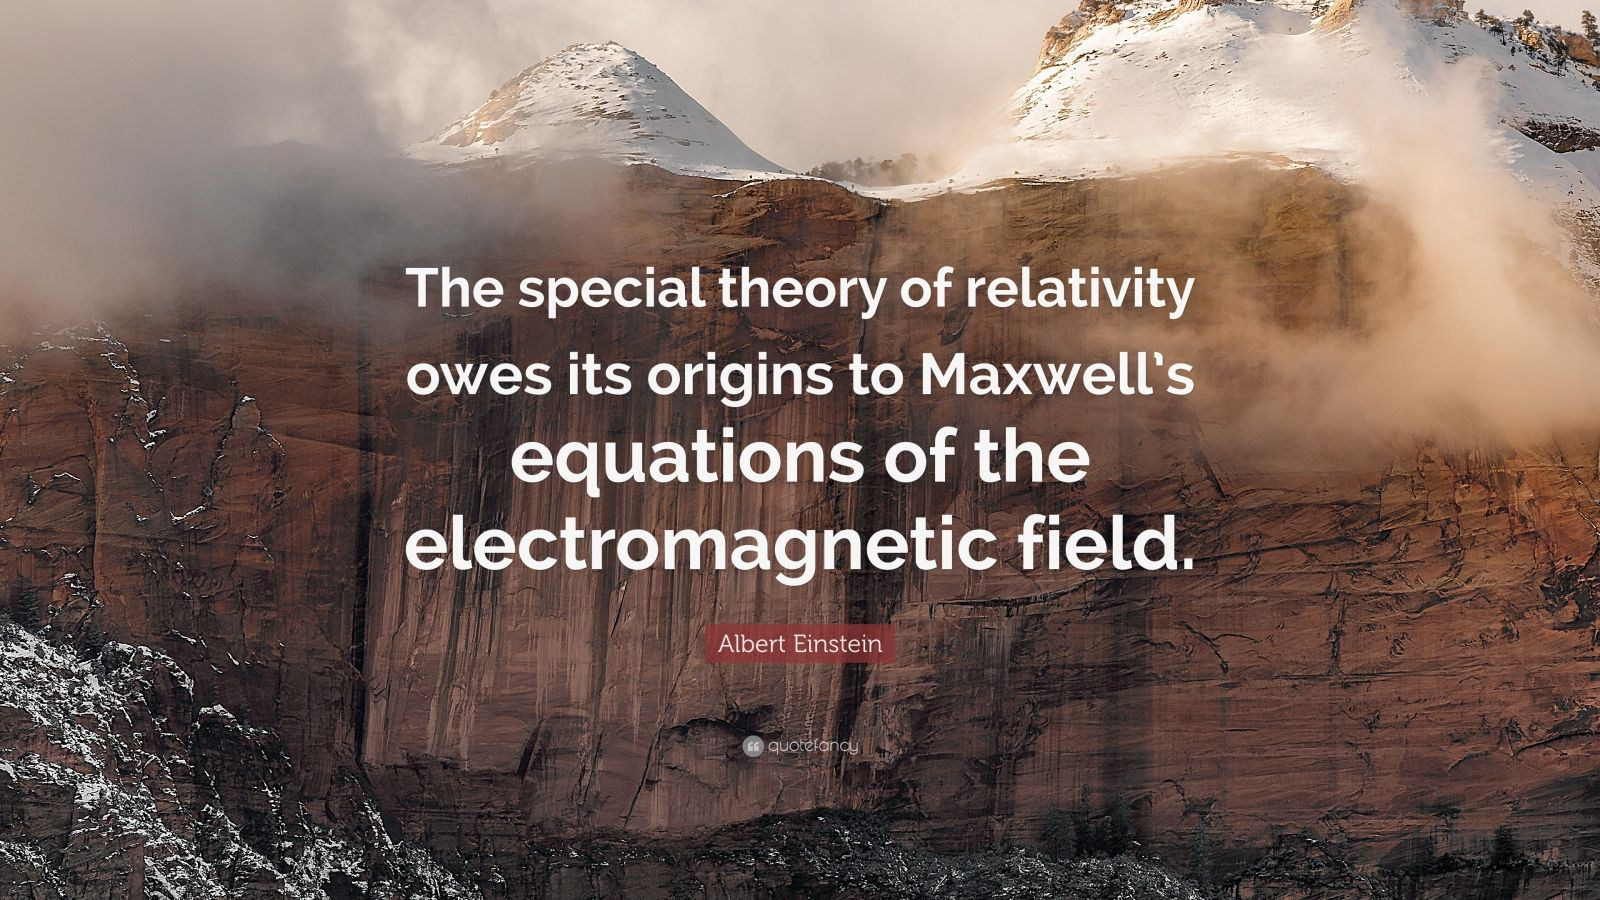 """Albert Einstein Quote: """"The special theory of relativity owes its origins to Maxwell's equations of the electromagnetic field."""""""